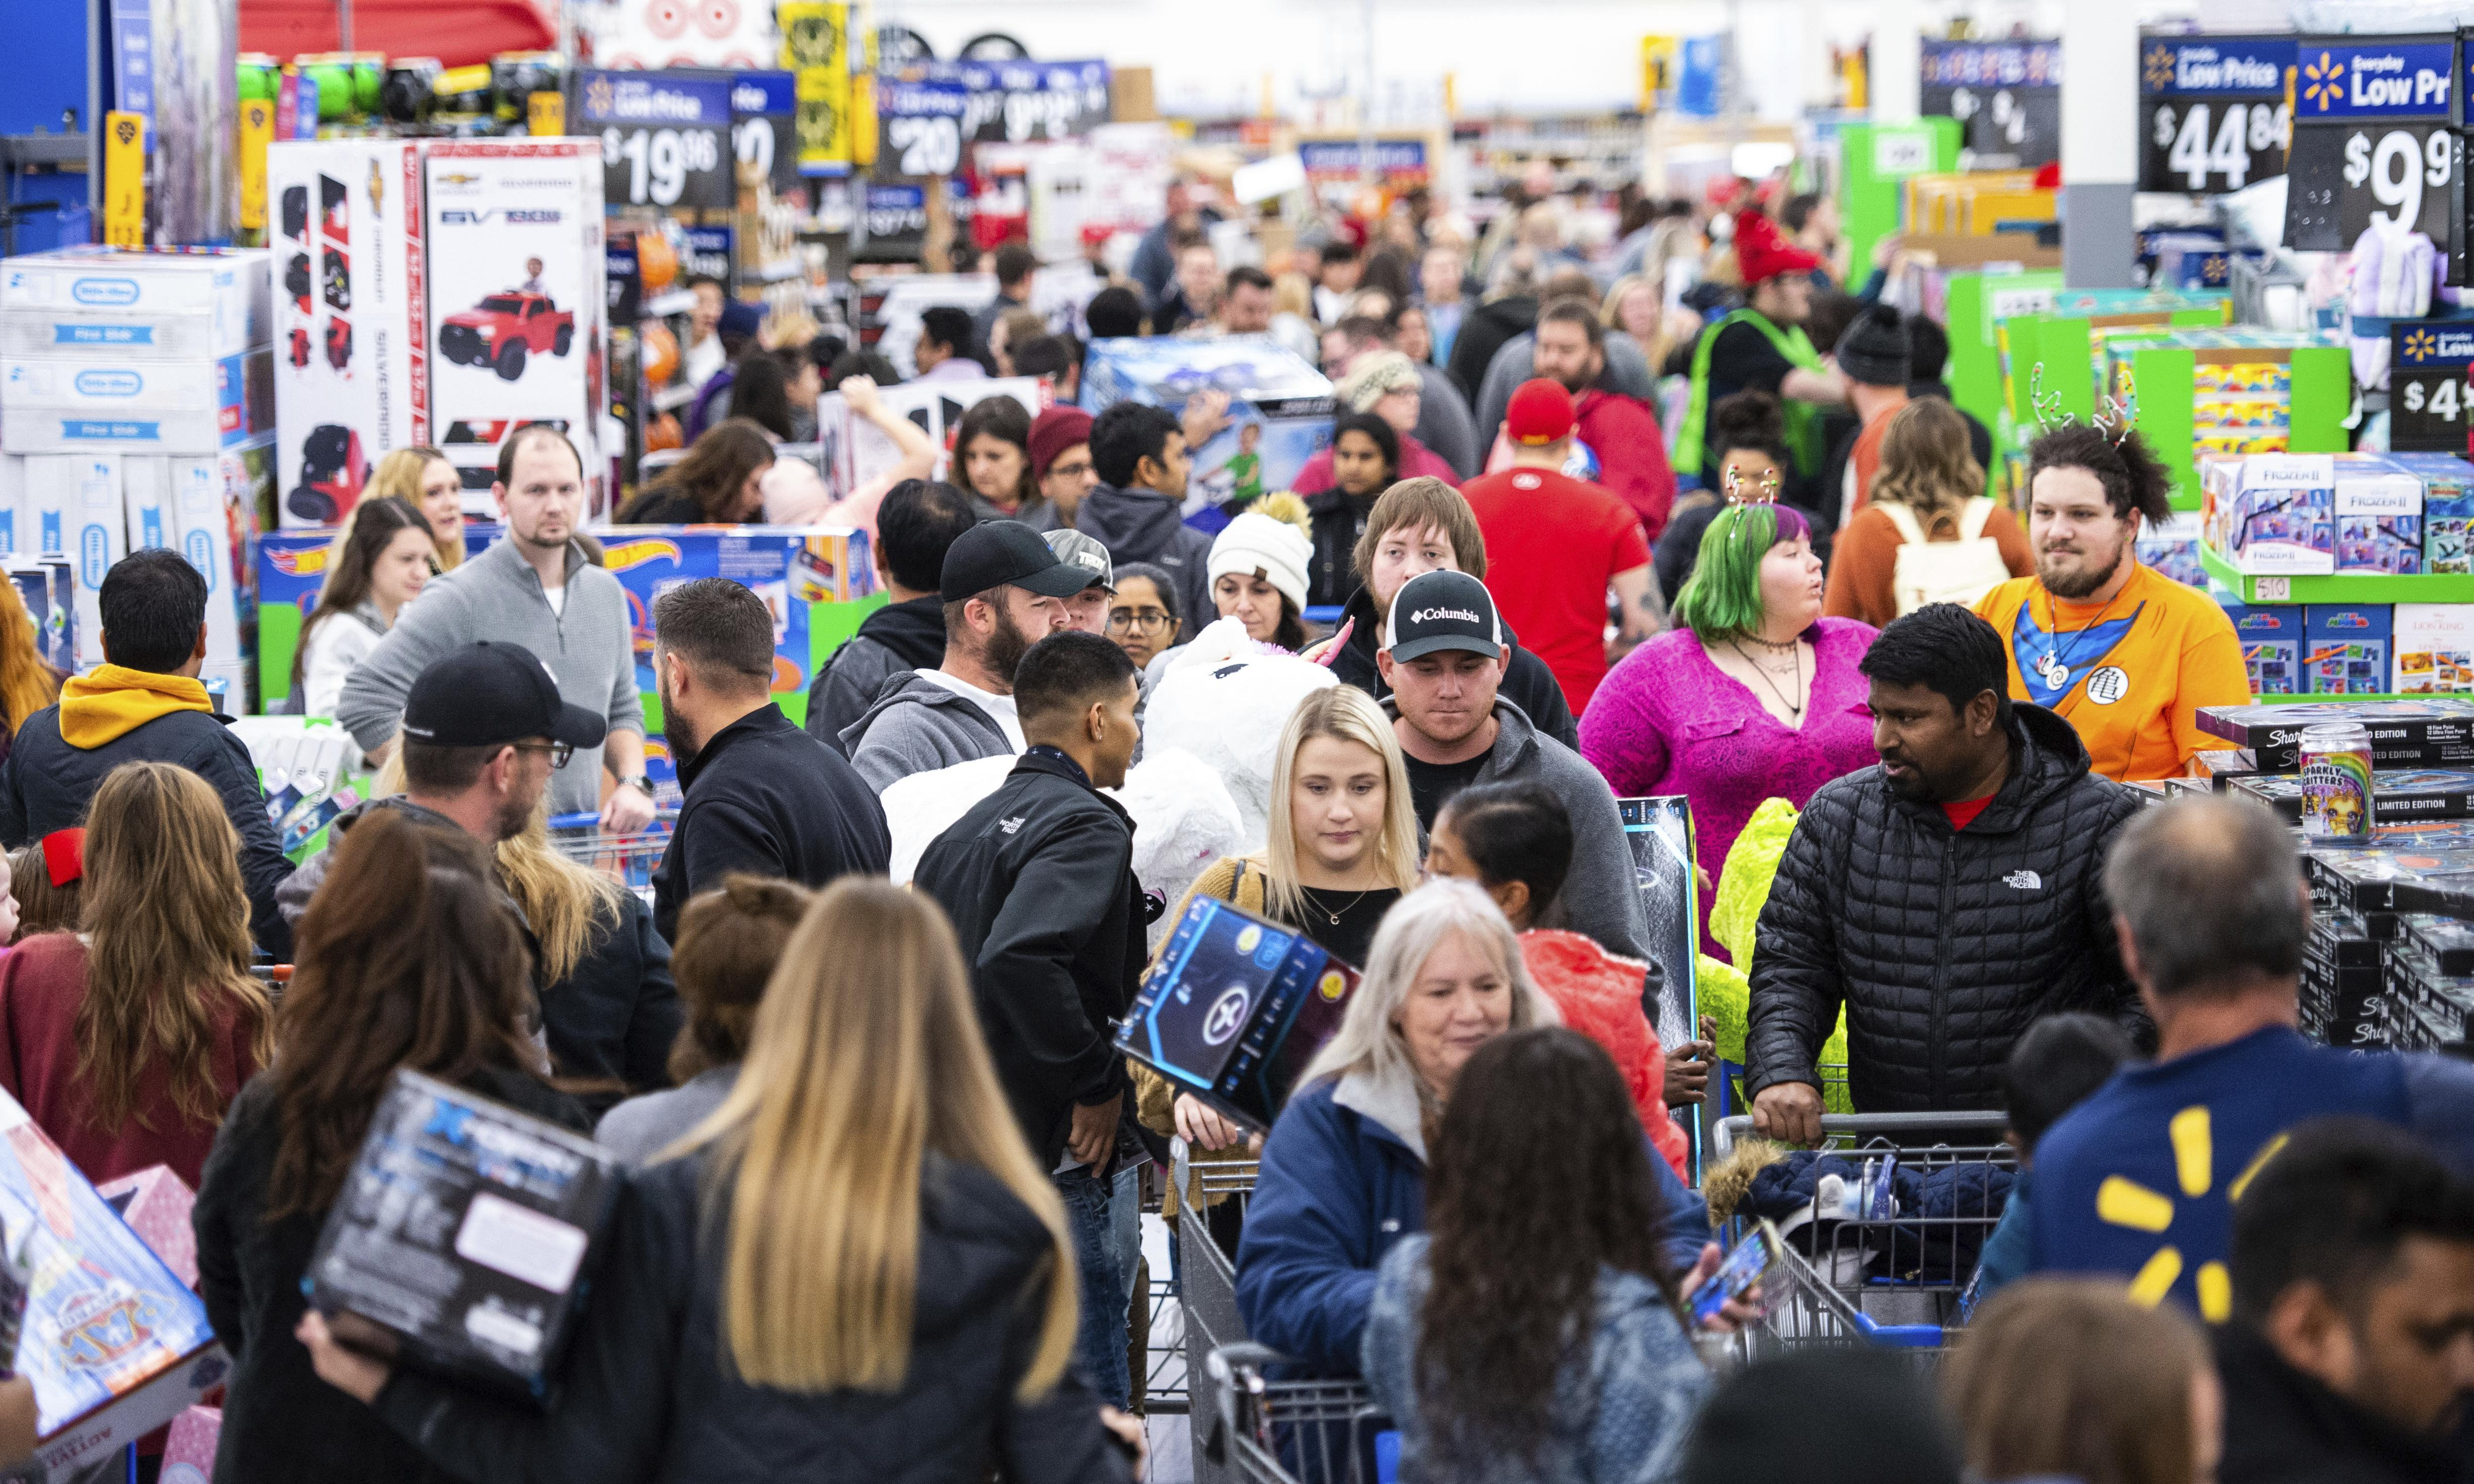 Mass consumerism is decimating our planet. This Black Friday, let's take a stand